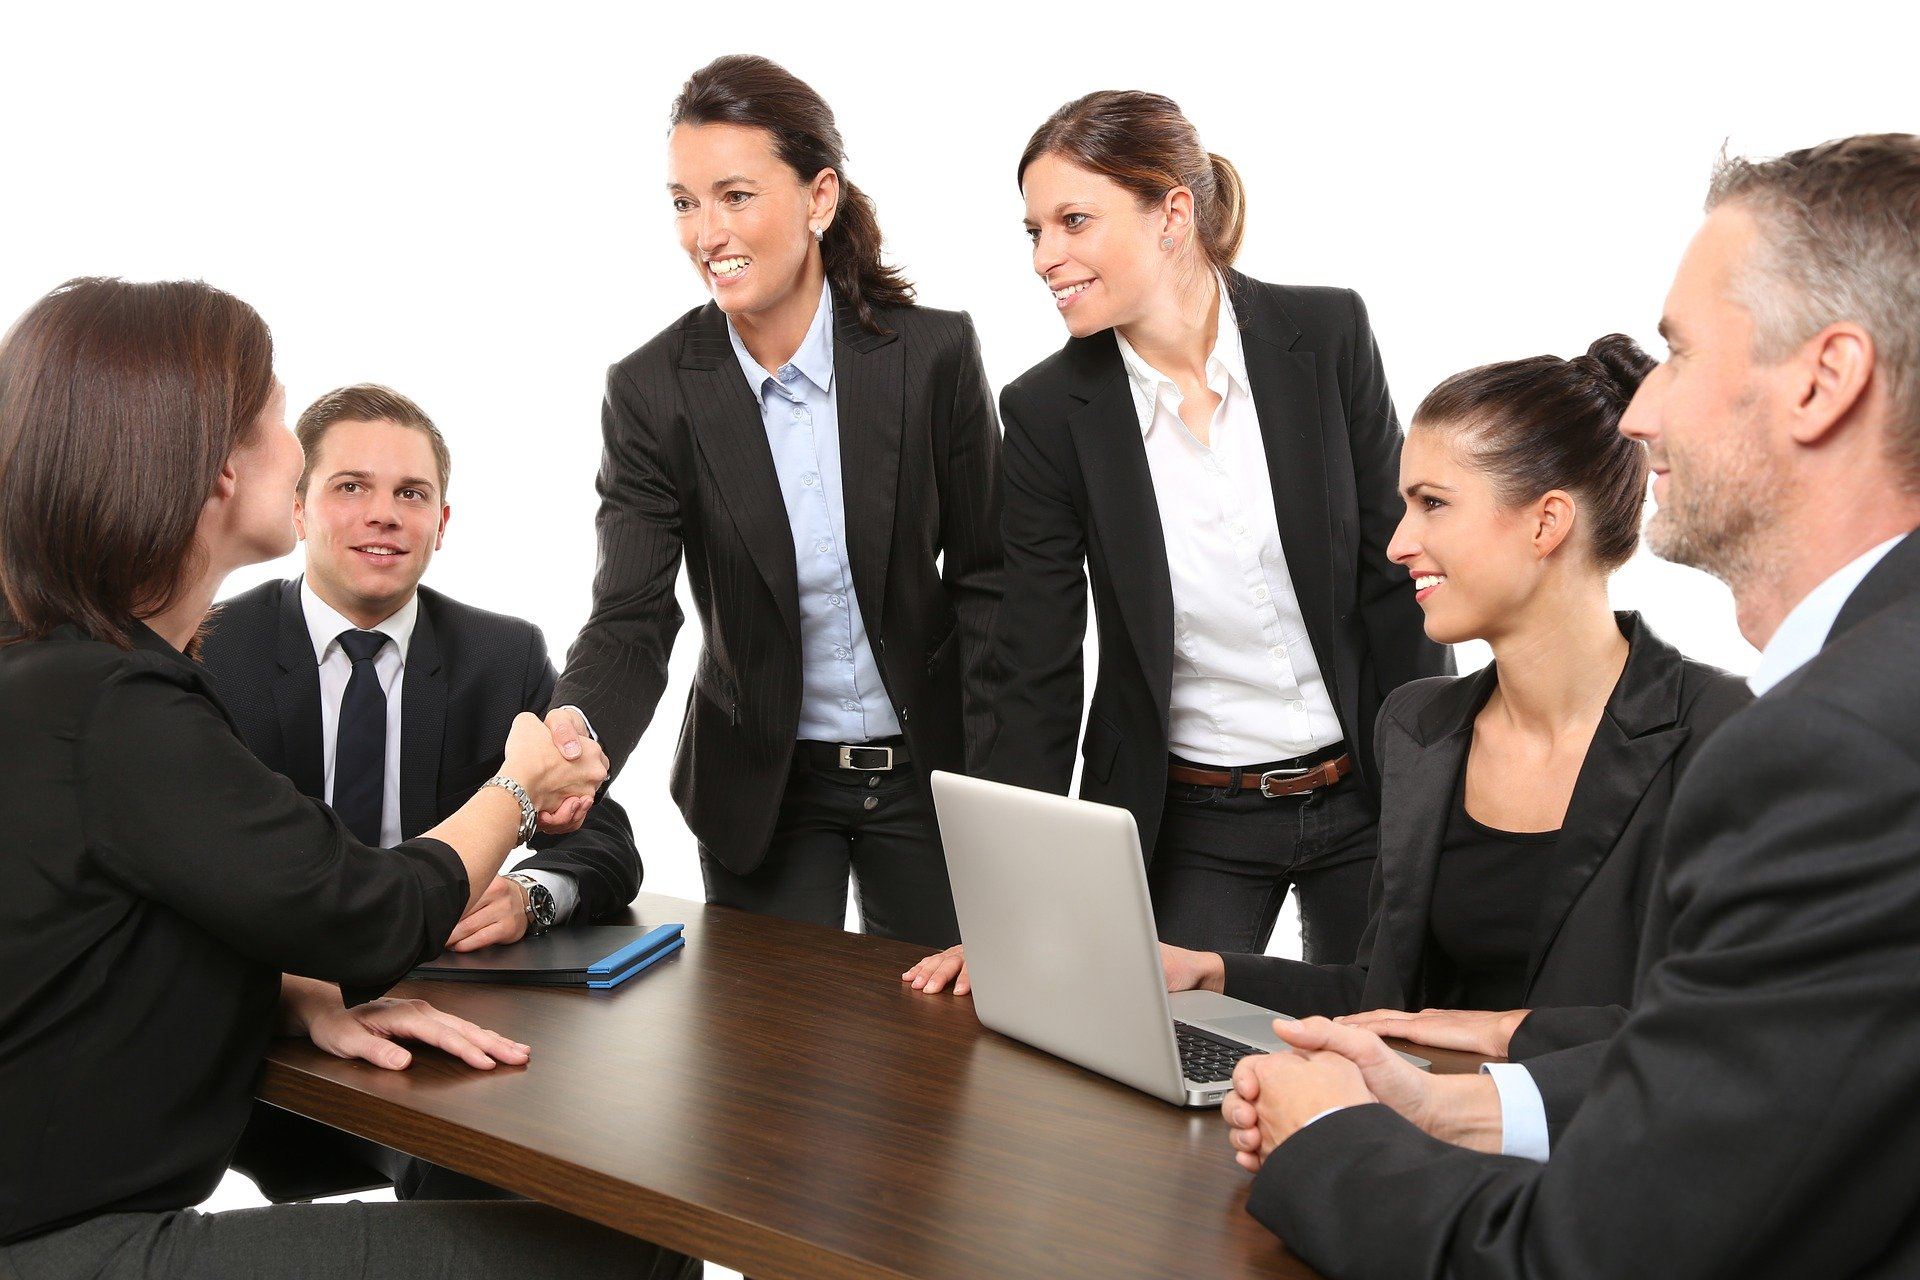 Professional men and women in a meeting